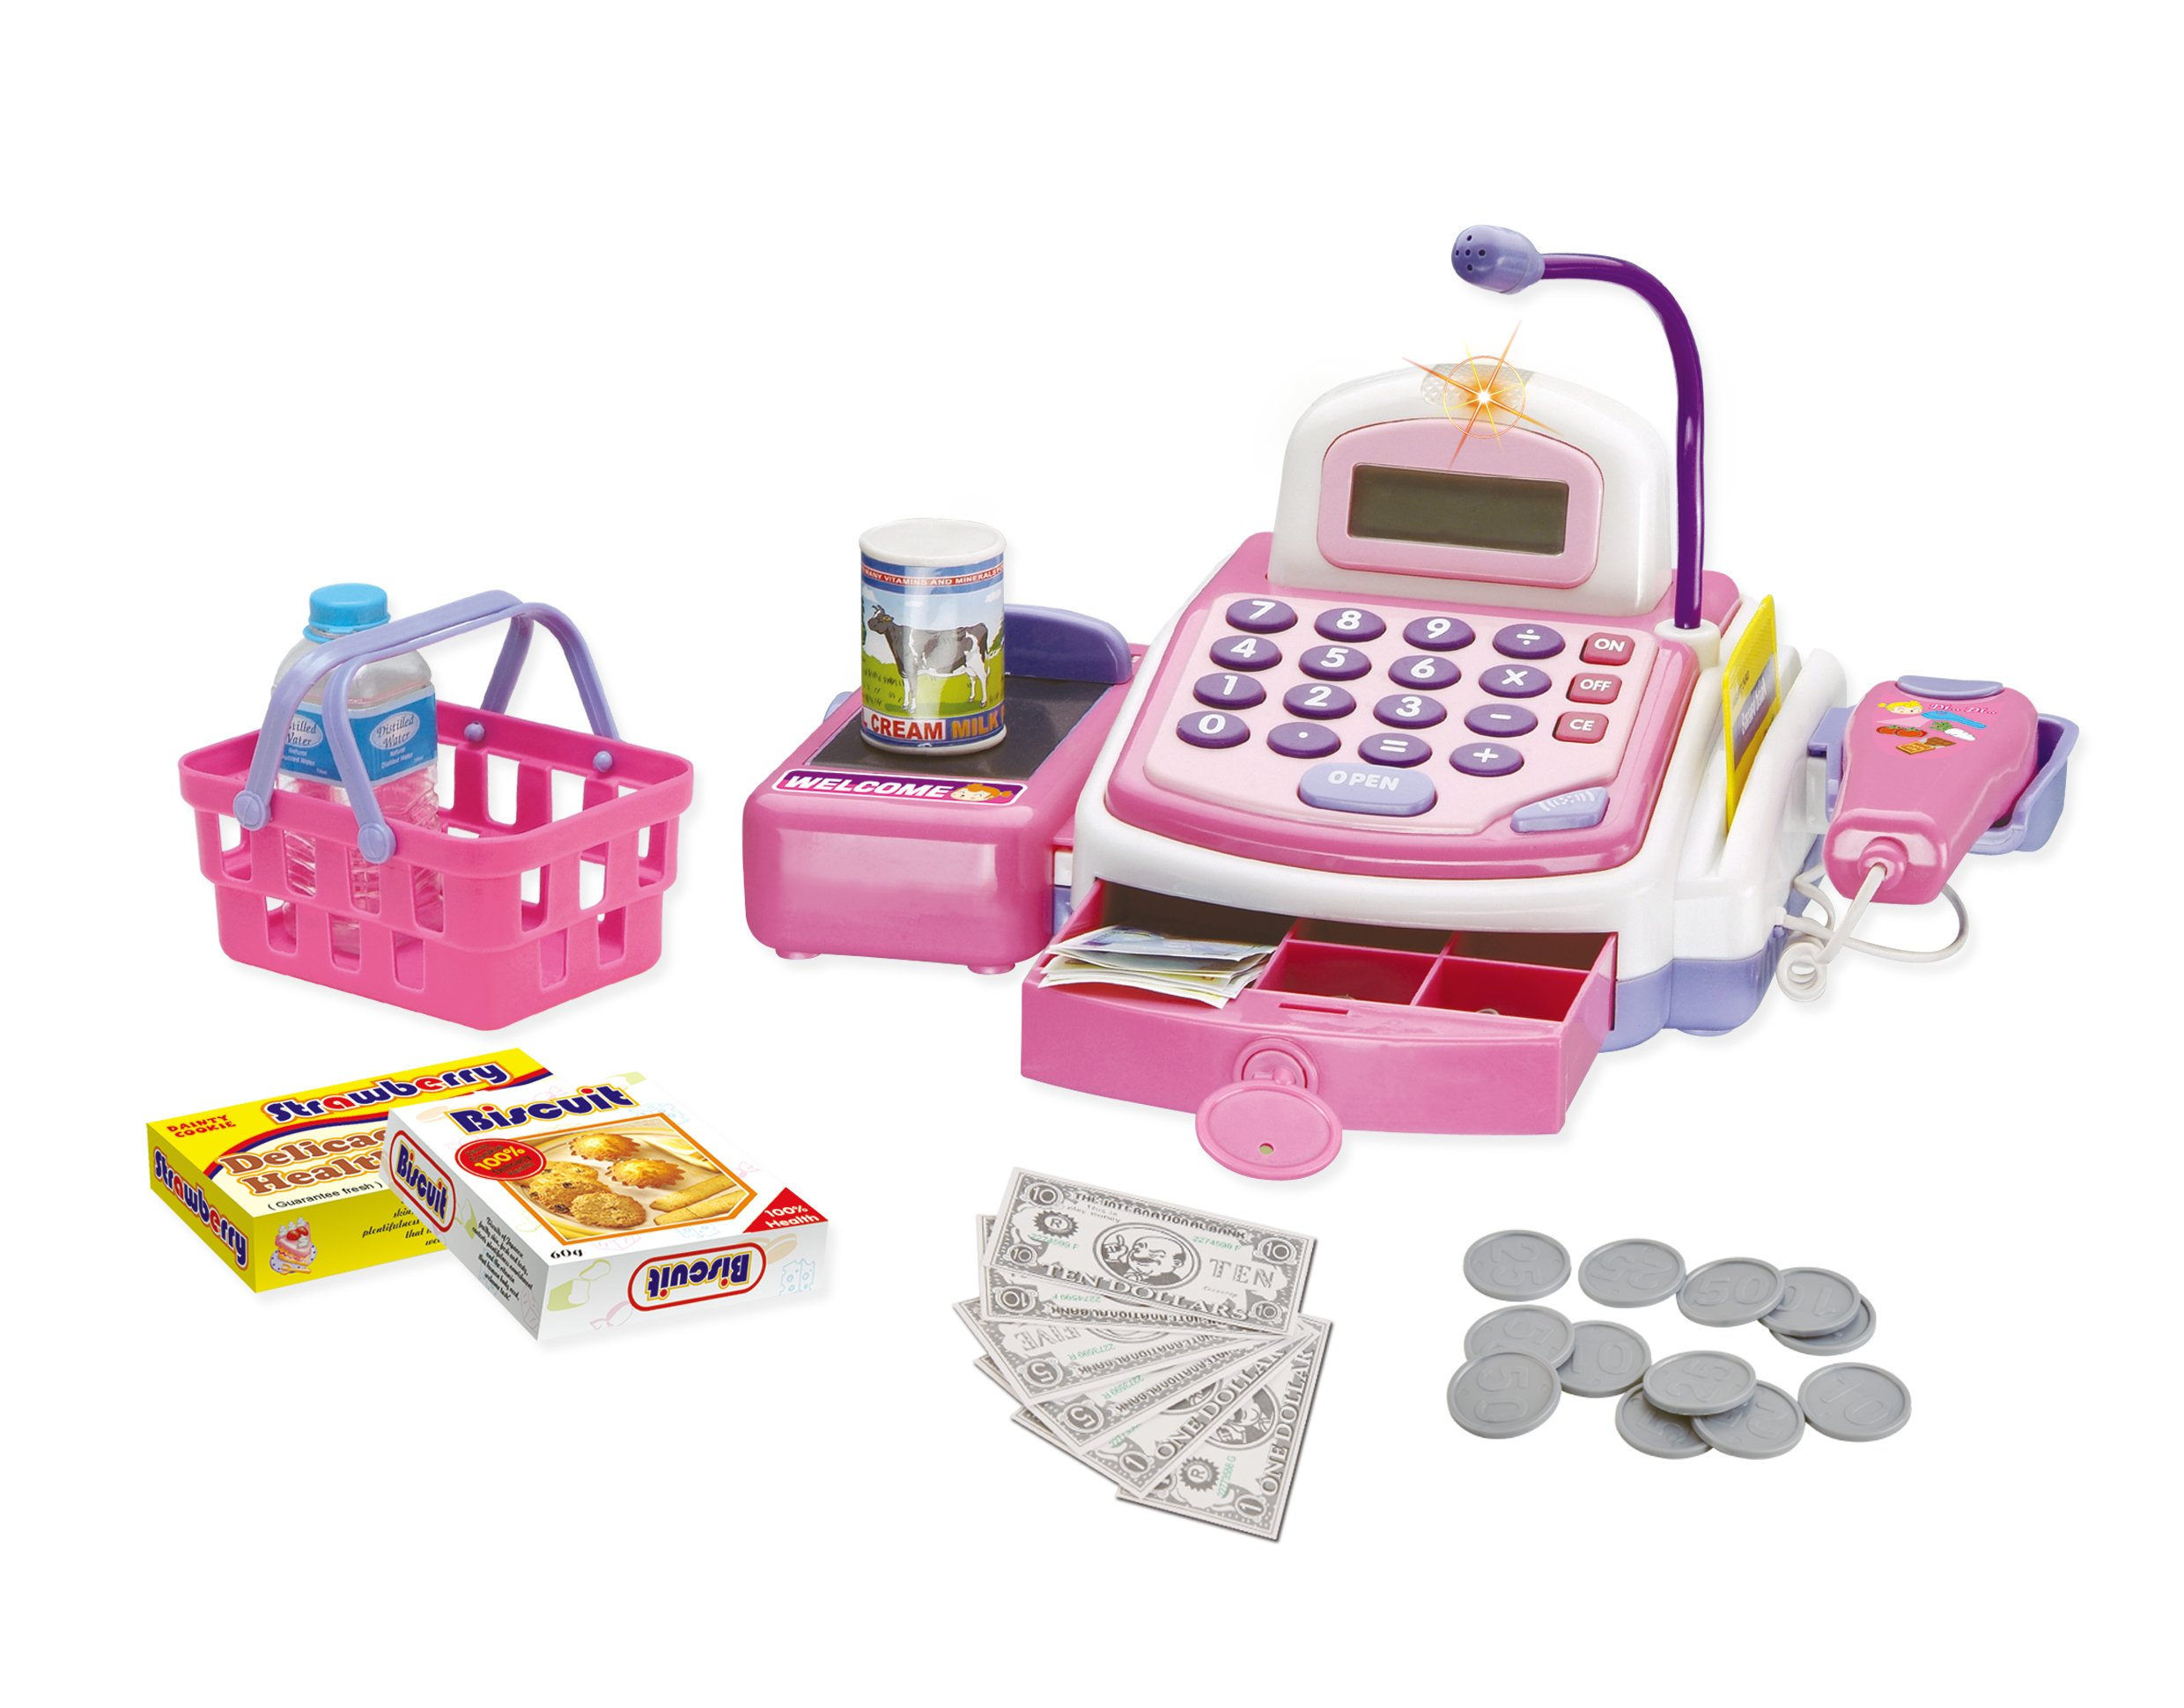 CifToys Cashier Toy Cash Register Playset | Pretend Play Set for Kids | Colorful Children's Supermarket Checkout Toy with Microphone & Sounds | Ideal Gift for Toddlers & Pre-Schoolers by CifToys (Image #1)